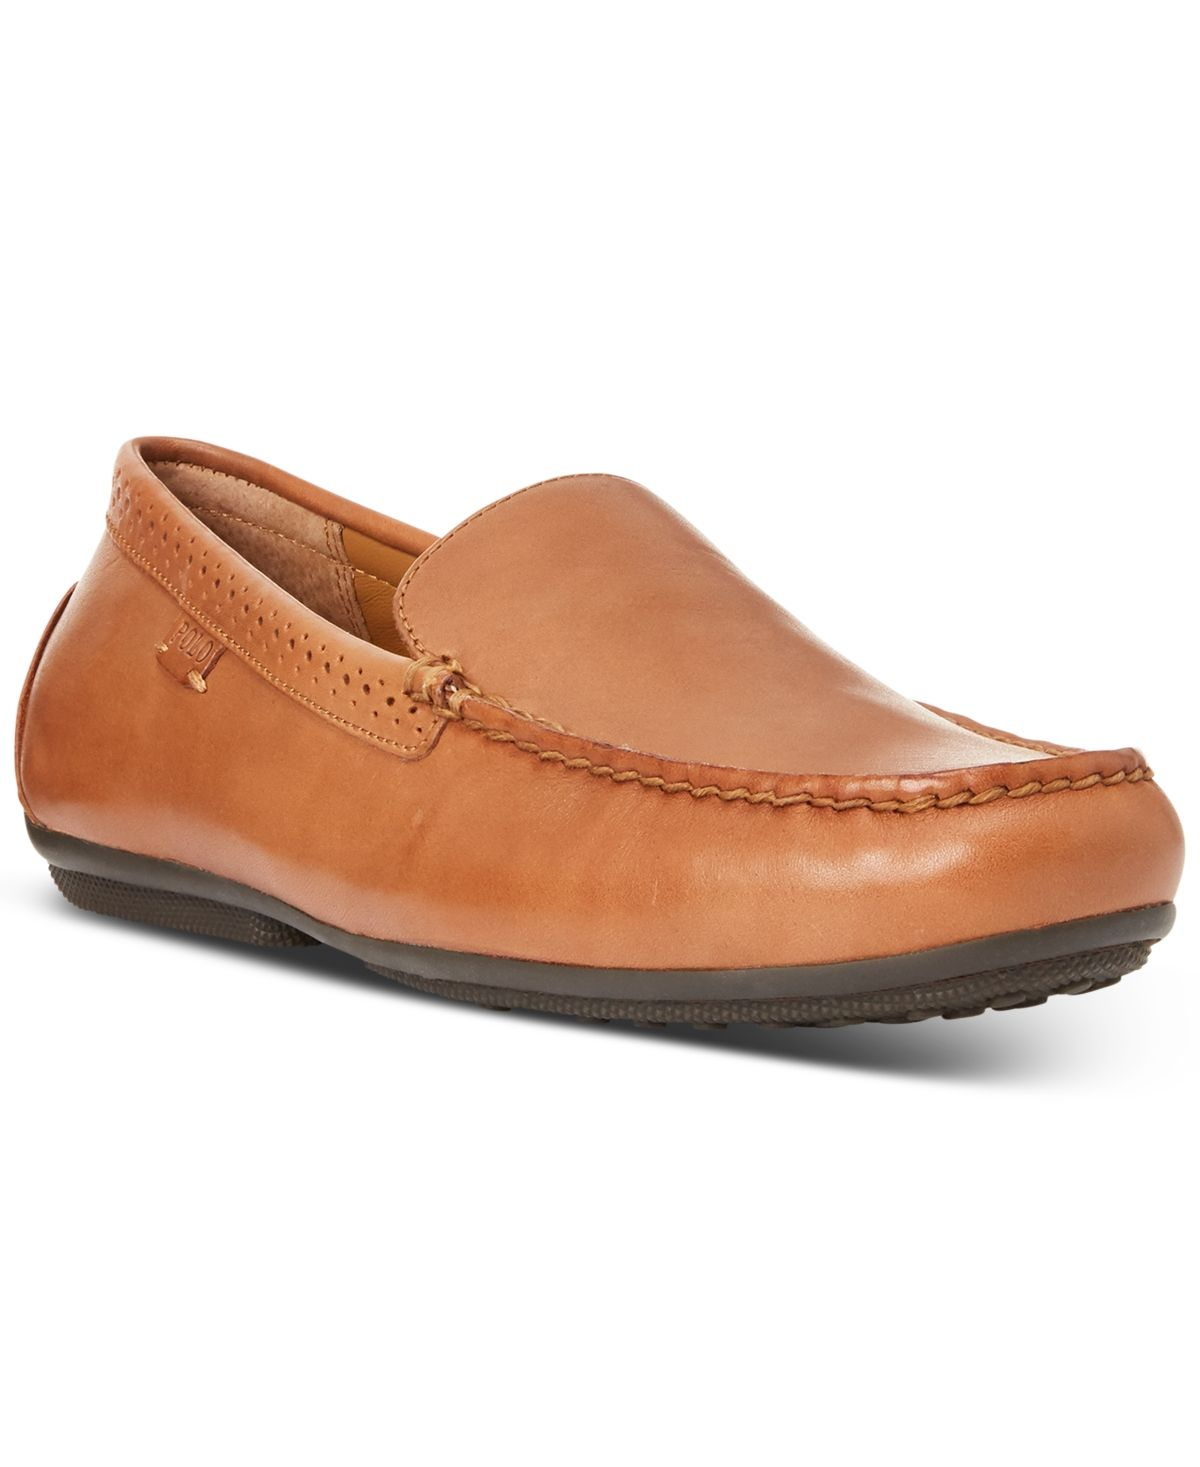 Polo Ralph Lauren Men/'s Shoes Redden Casual Driving Leather Loafers Polo Tan